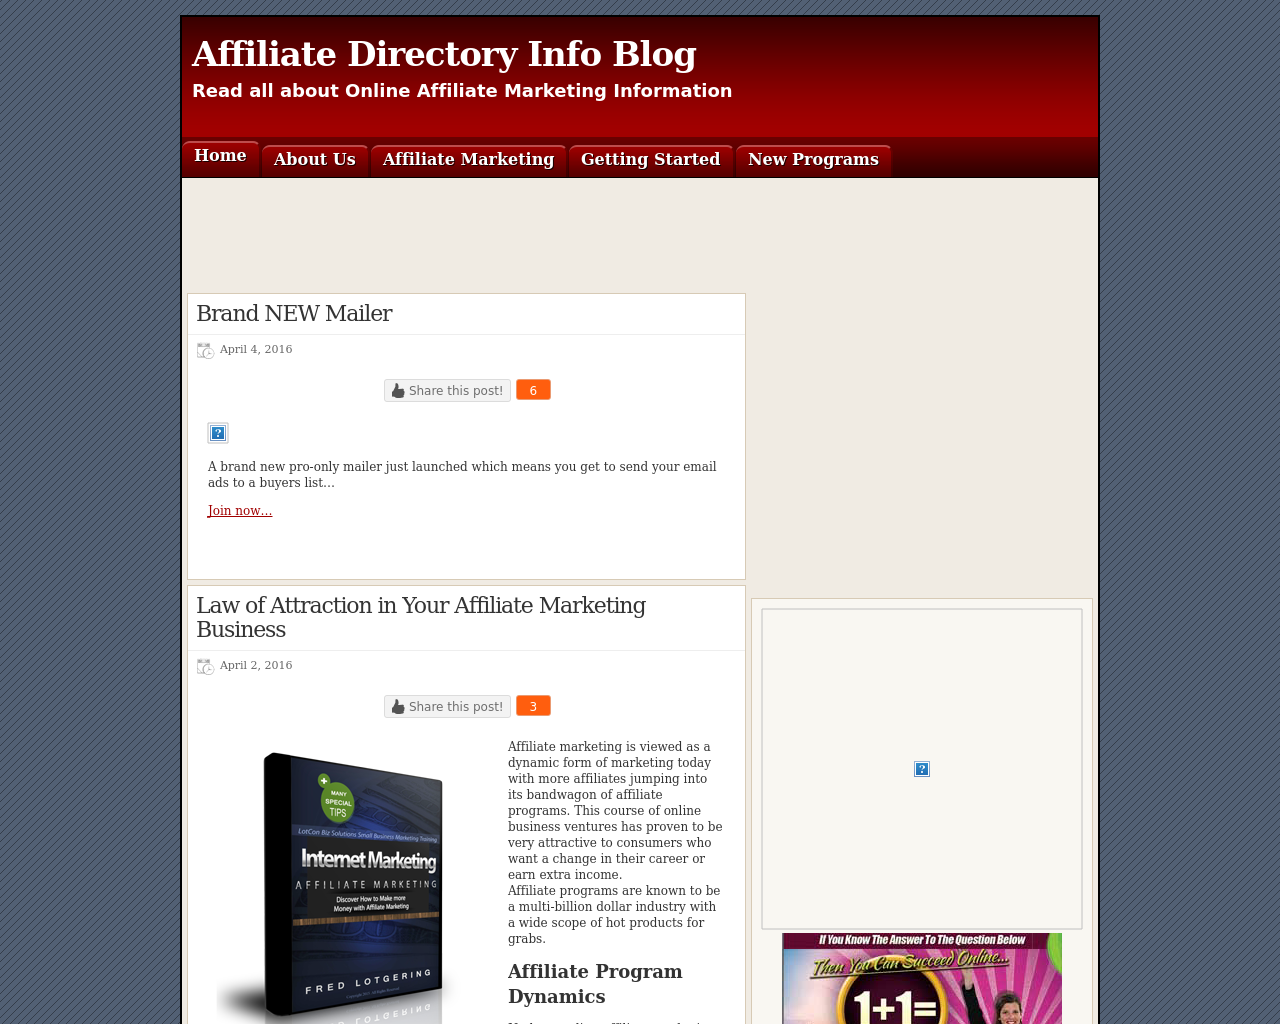 Affiliate-Directory-Info-Blog-Advertising-Reviews-Pricing